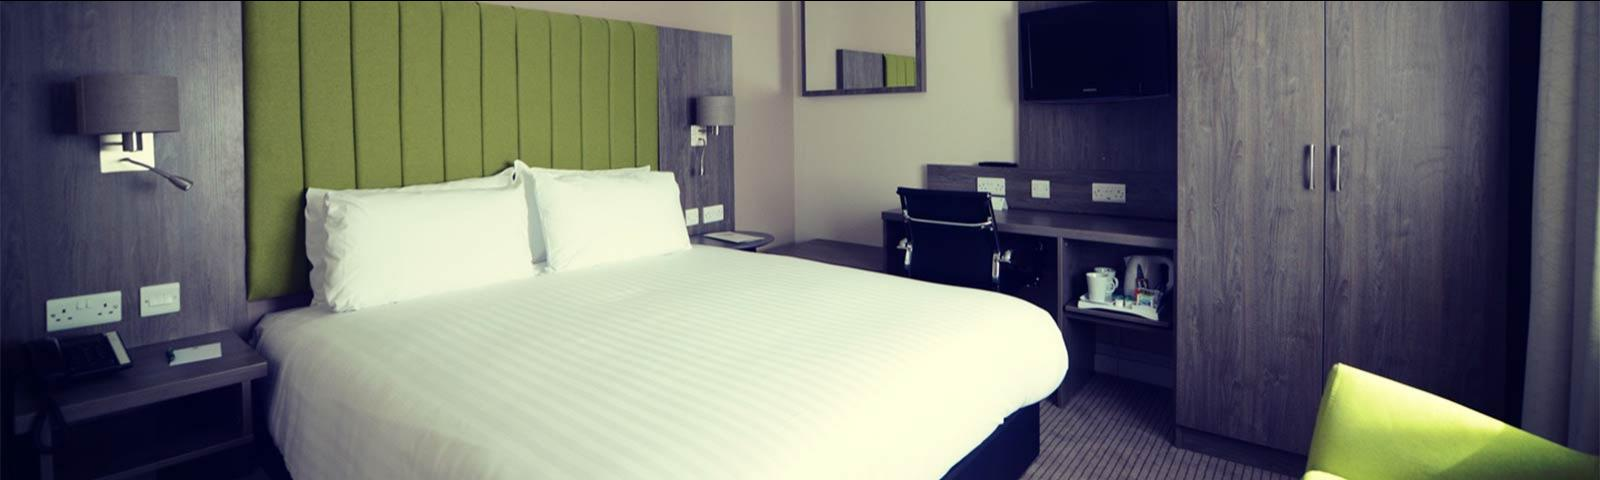 Interior shot of a double bedroom at the Holiday Inn Wolverhampton Racecourse.